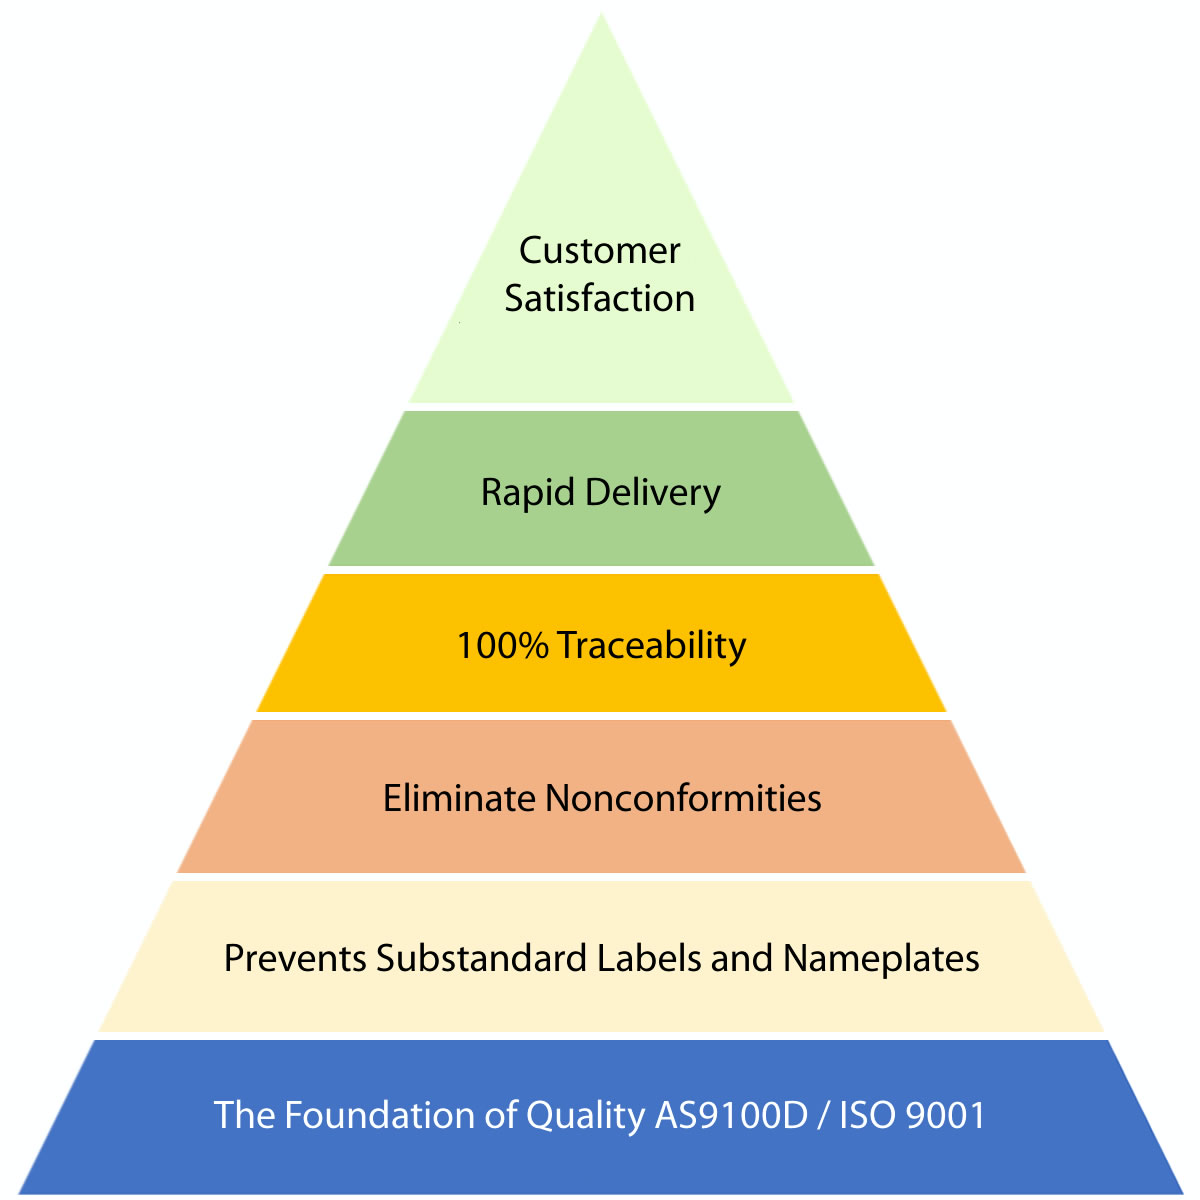 AS9100D ISO9001 Quality Assurance Pyramid